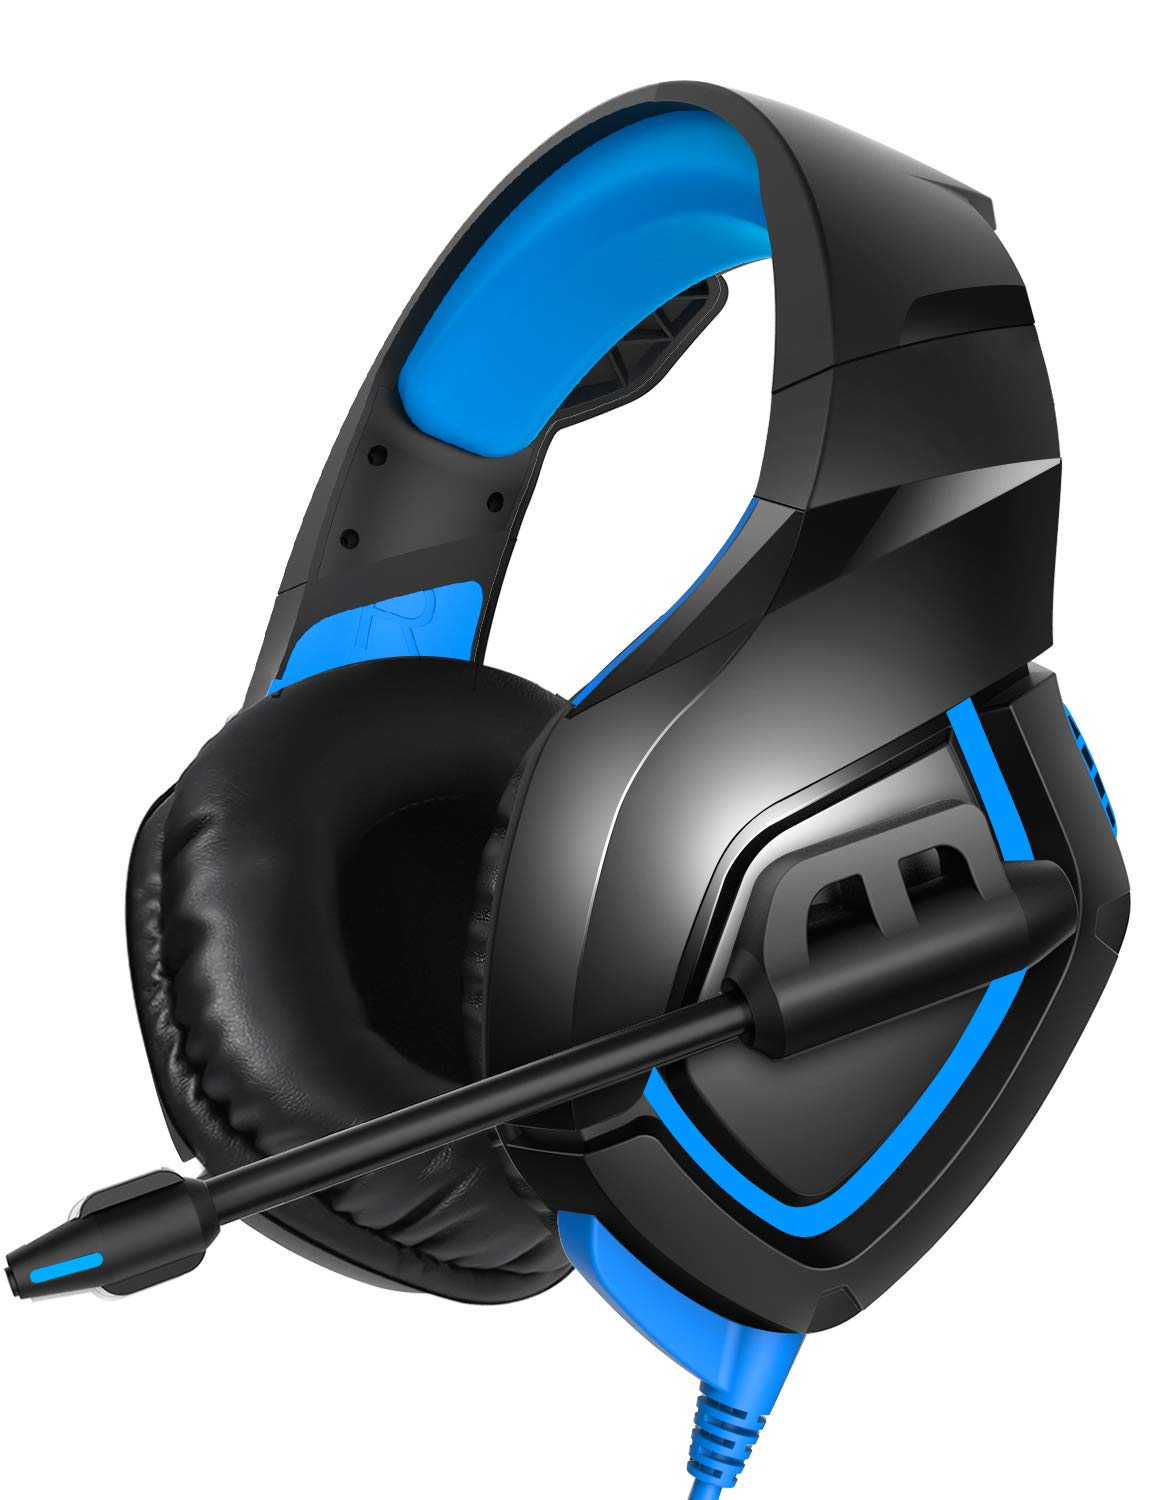 RUNMUS Gaming Headset PS4 Headset with 7 1 Surround Sound Stereo, Xbox One  Headset with Noise Canceling Mic, Compatible with PC, PS4, Xbox One